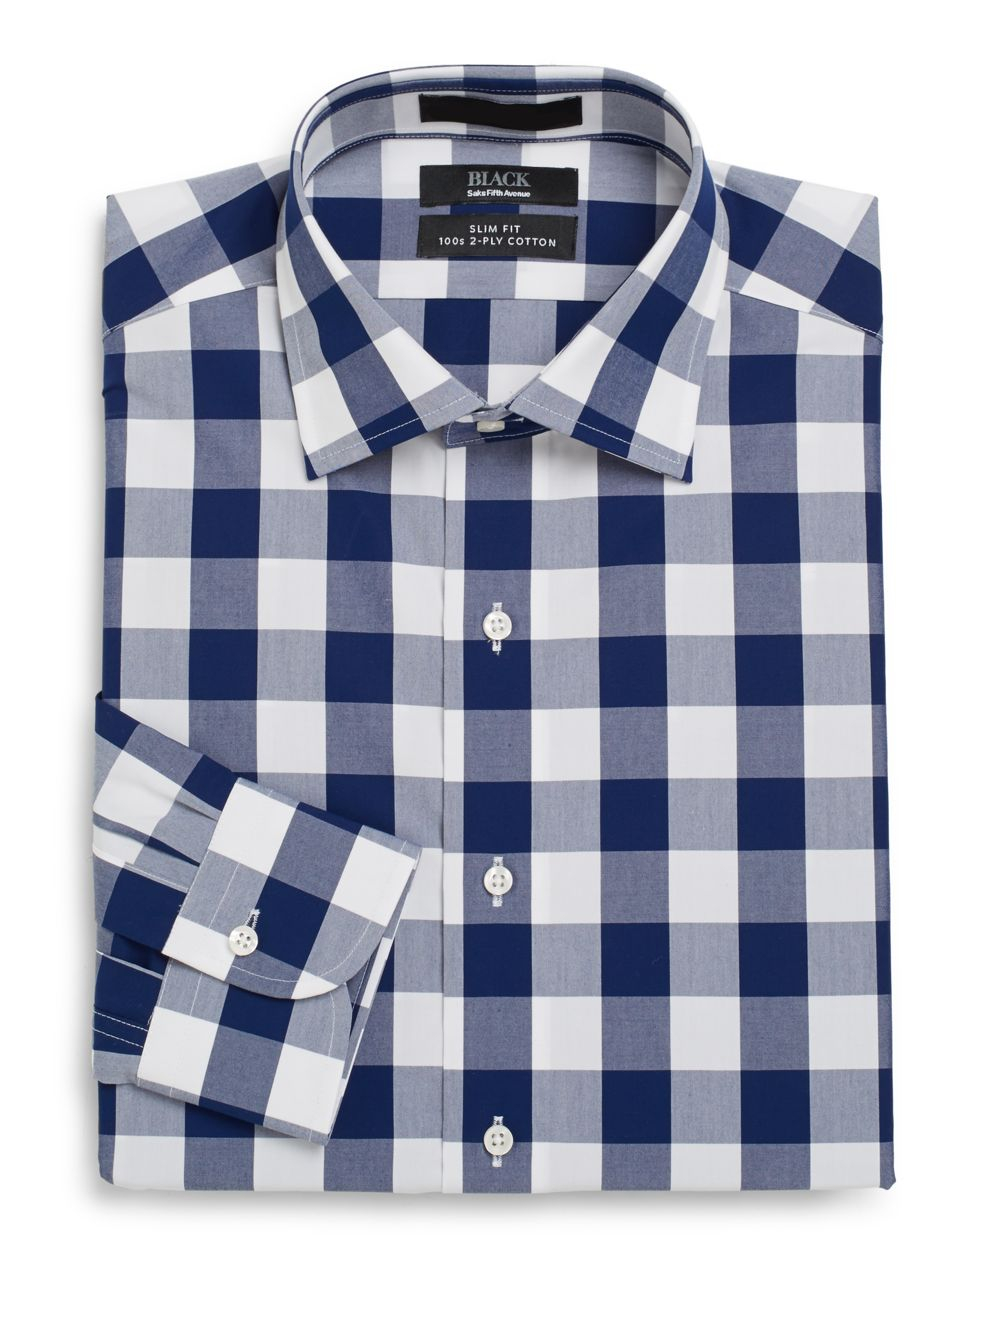 Saks fifth avenue black label slim fit buffalo check two for 2 ply cotton dress shirt